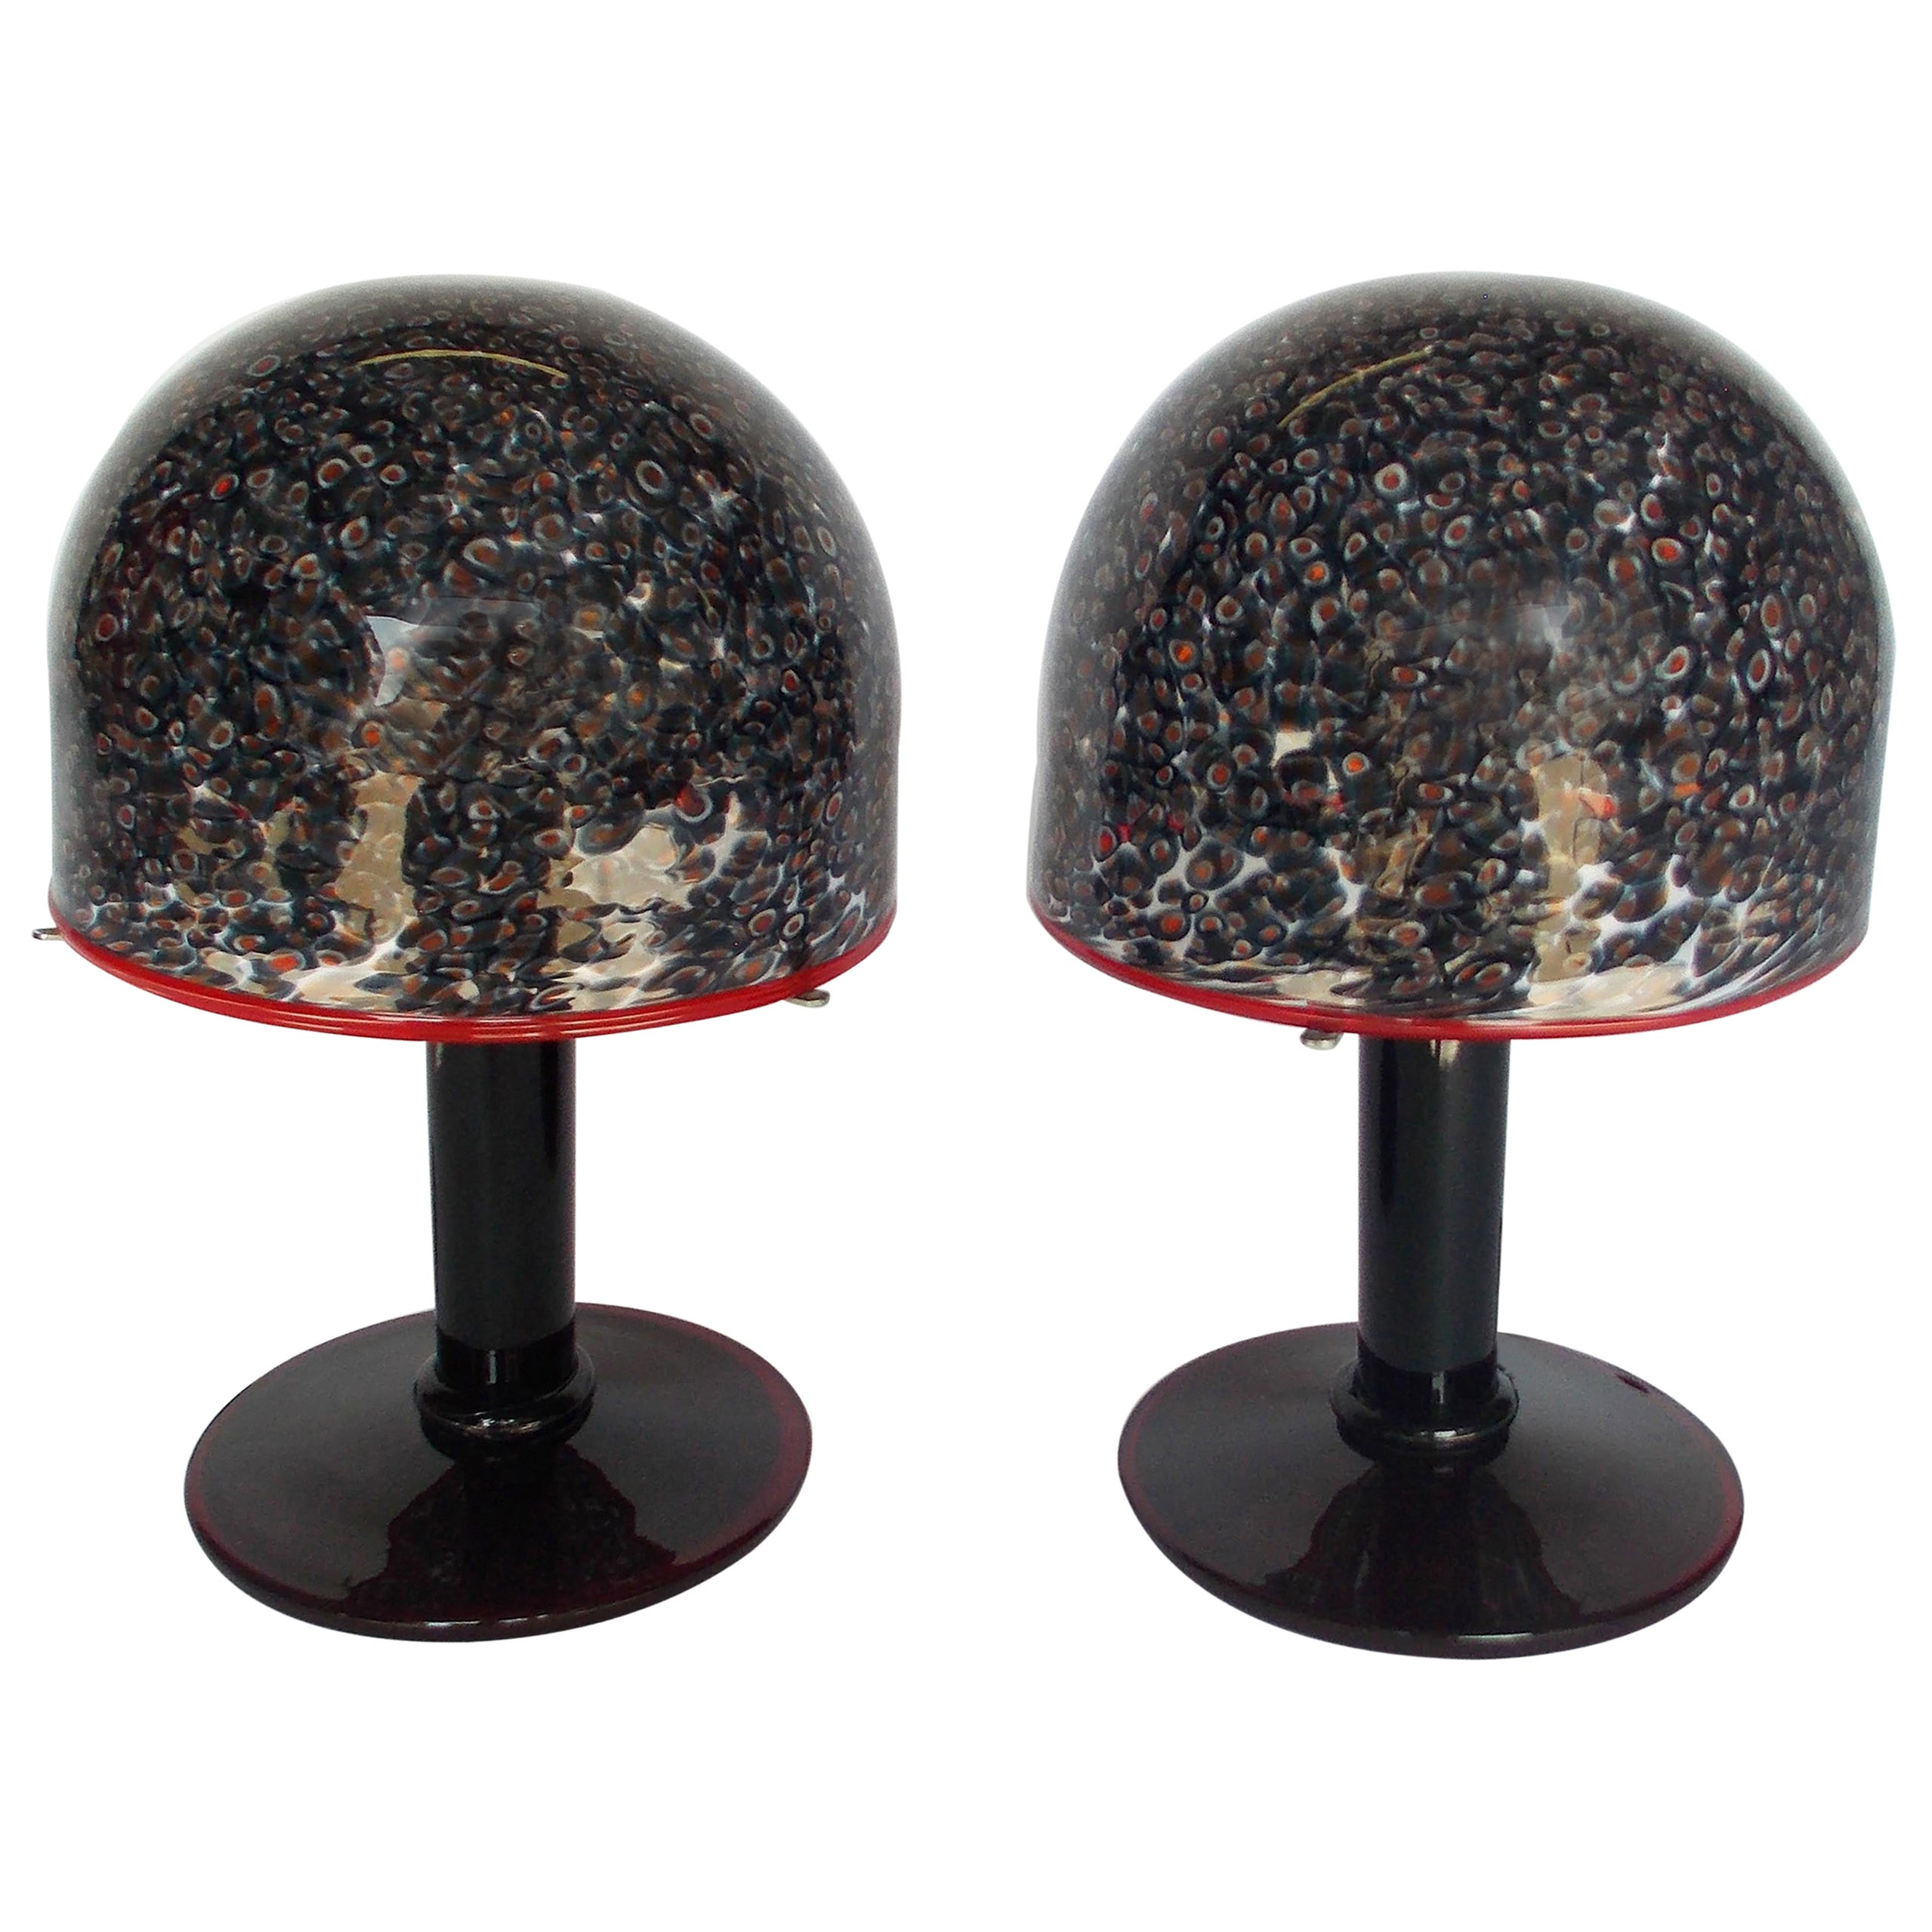 Gae Aulenti Murrine Glass Table Lamps